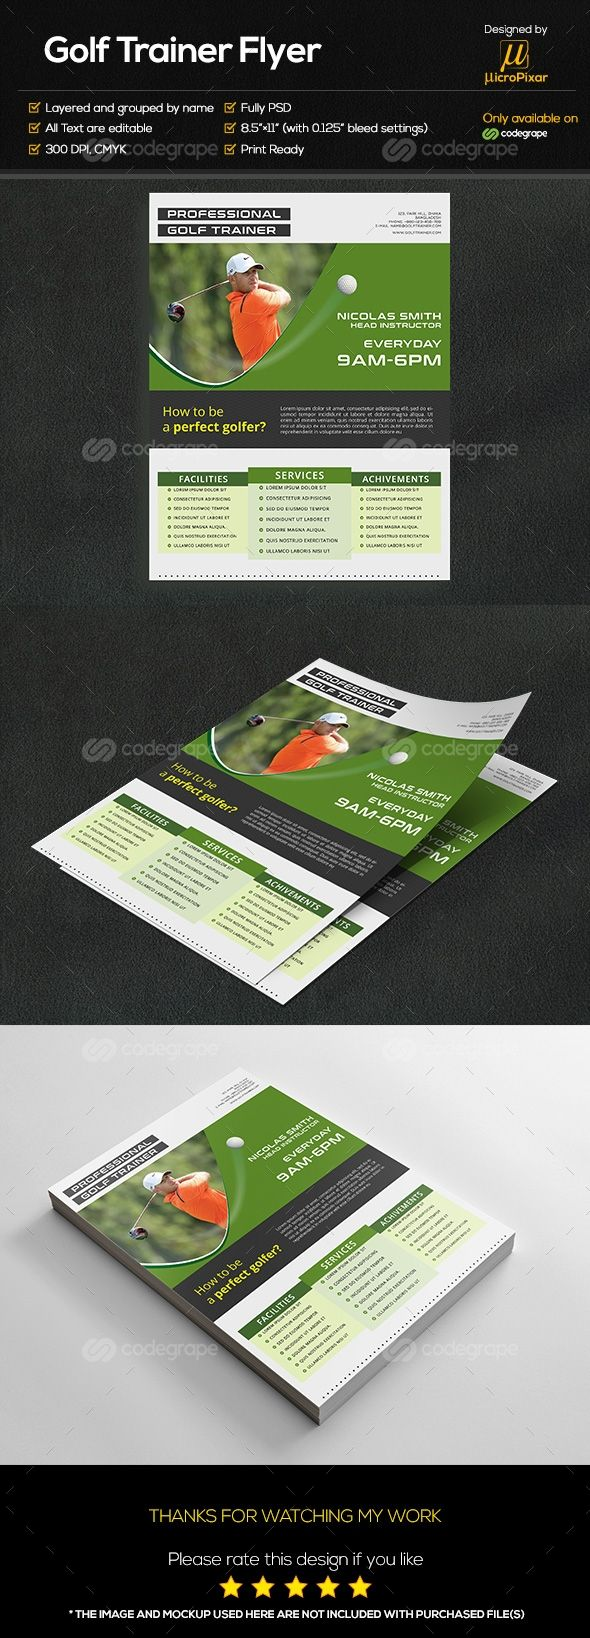 Golf Trainer Flyer on @codegrape. More Info…